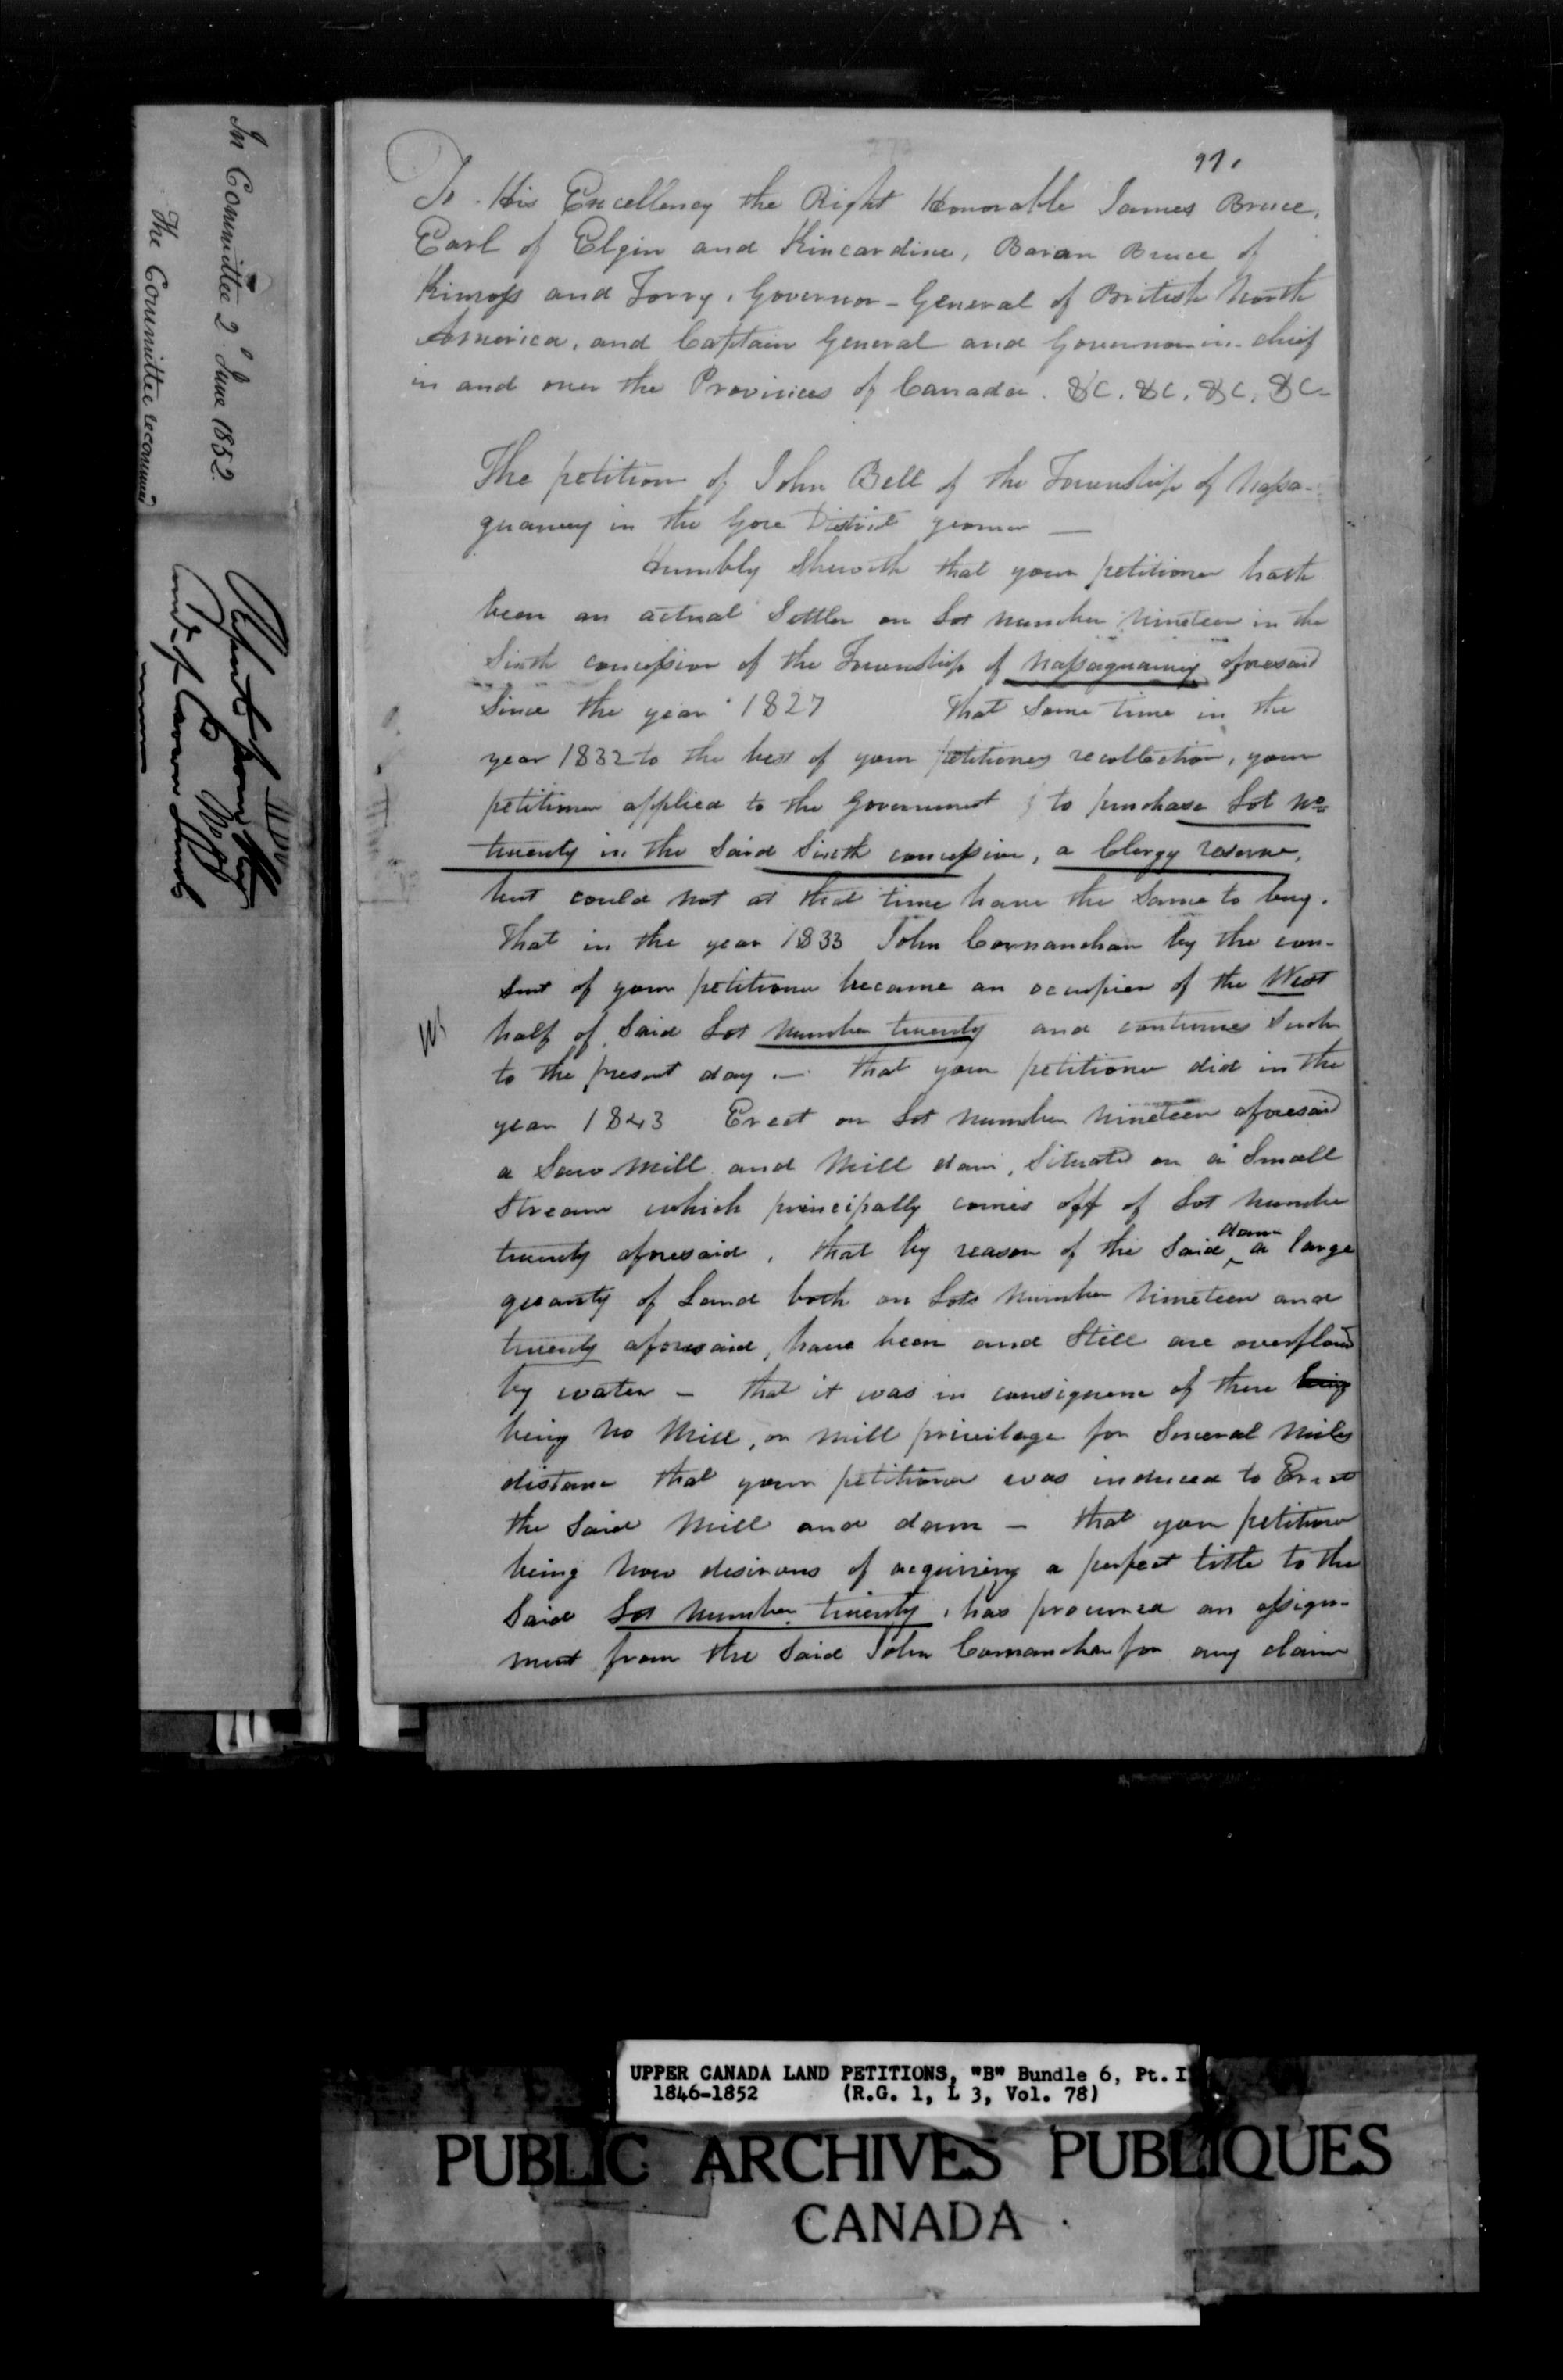 Title: Upper Canada Land Petitions (1763-1865) - Mikan Number: 205131 - Microform: c-1642